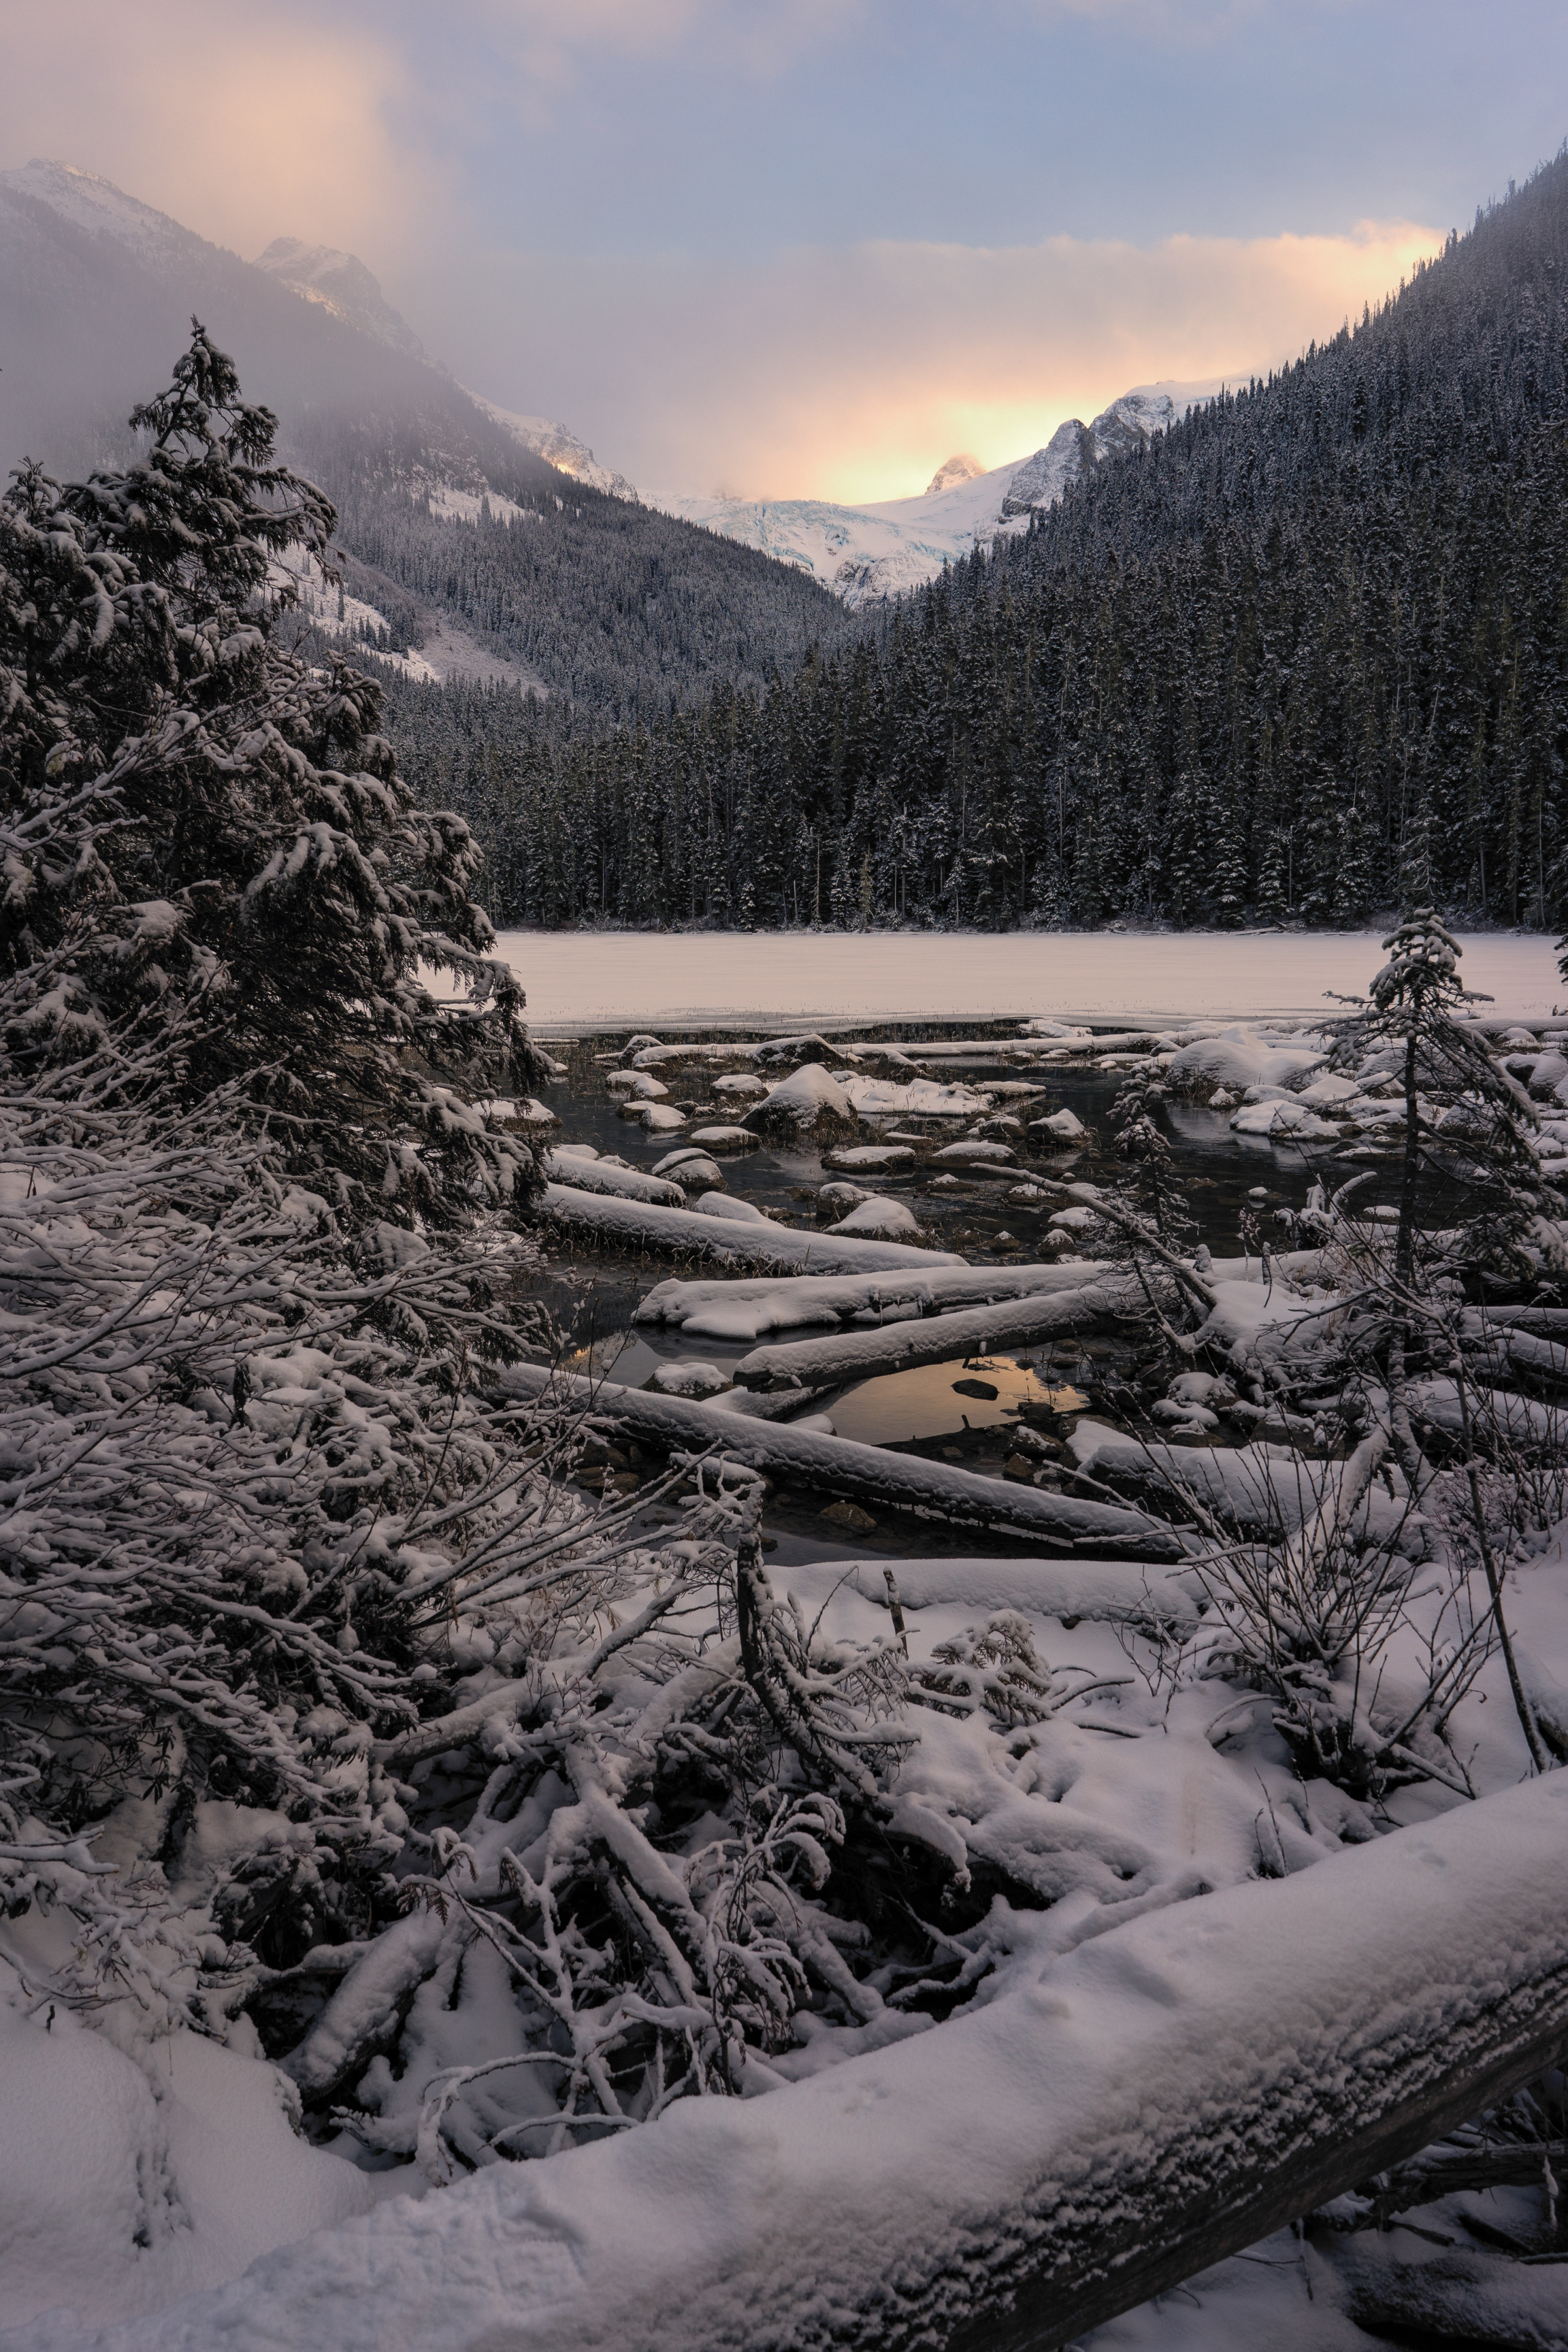 Foggy golden light on a snowy mountains scene and lake